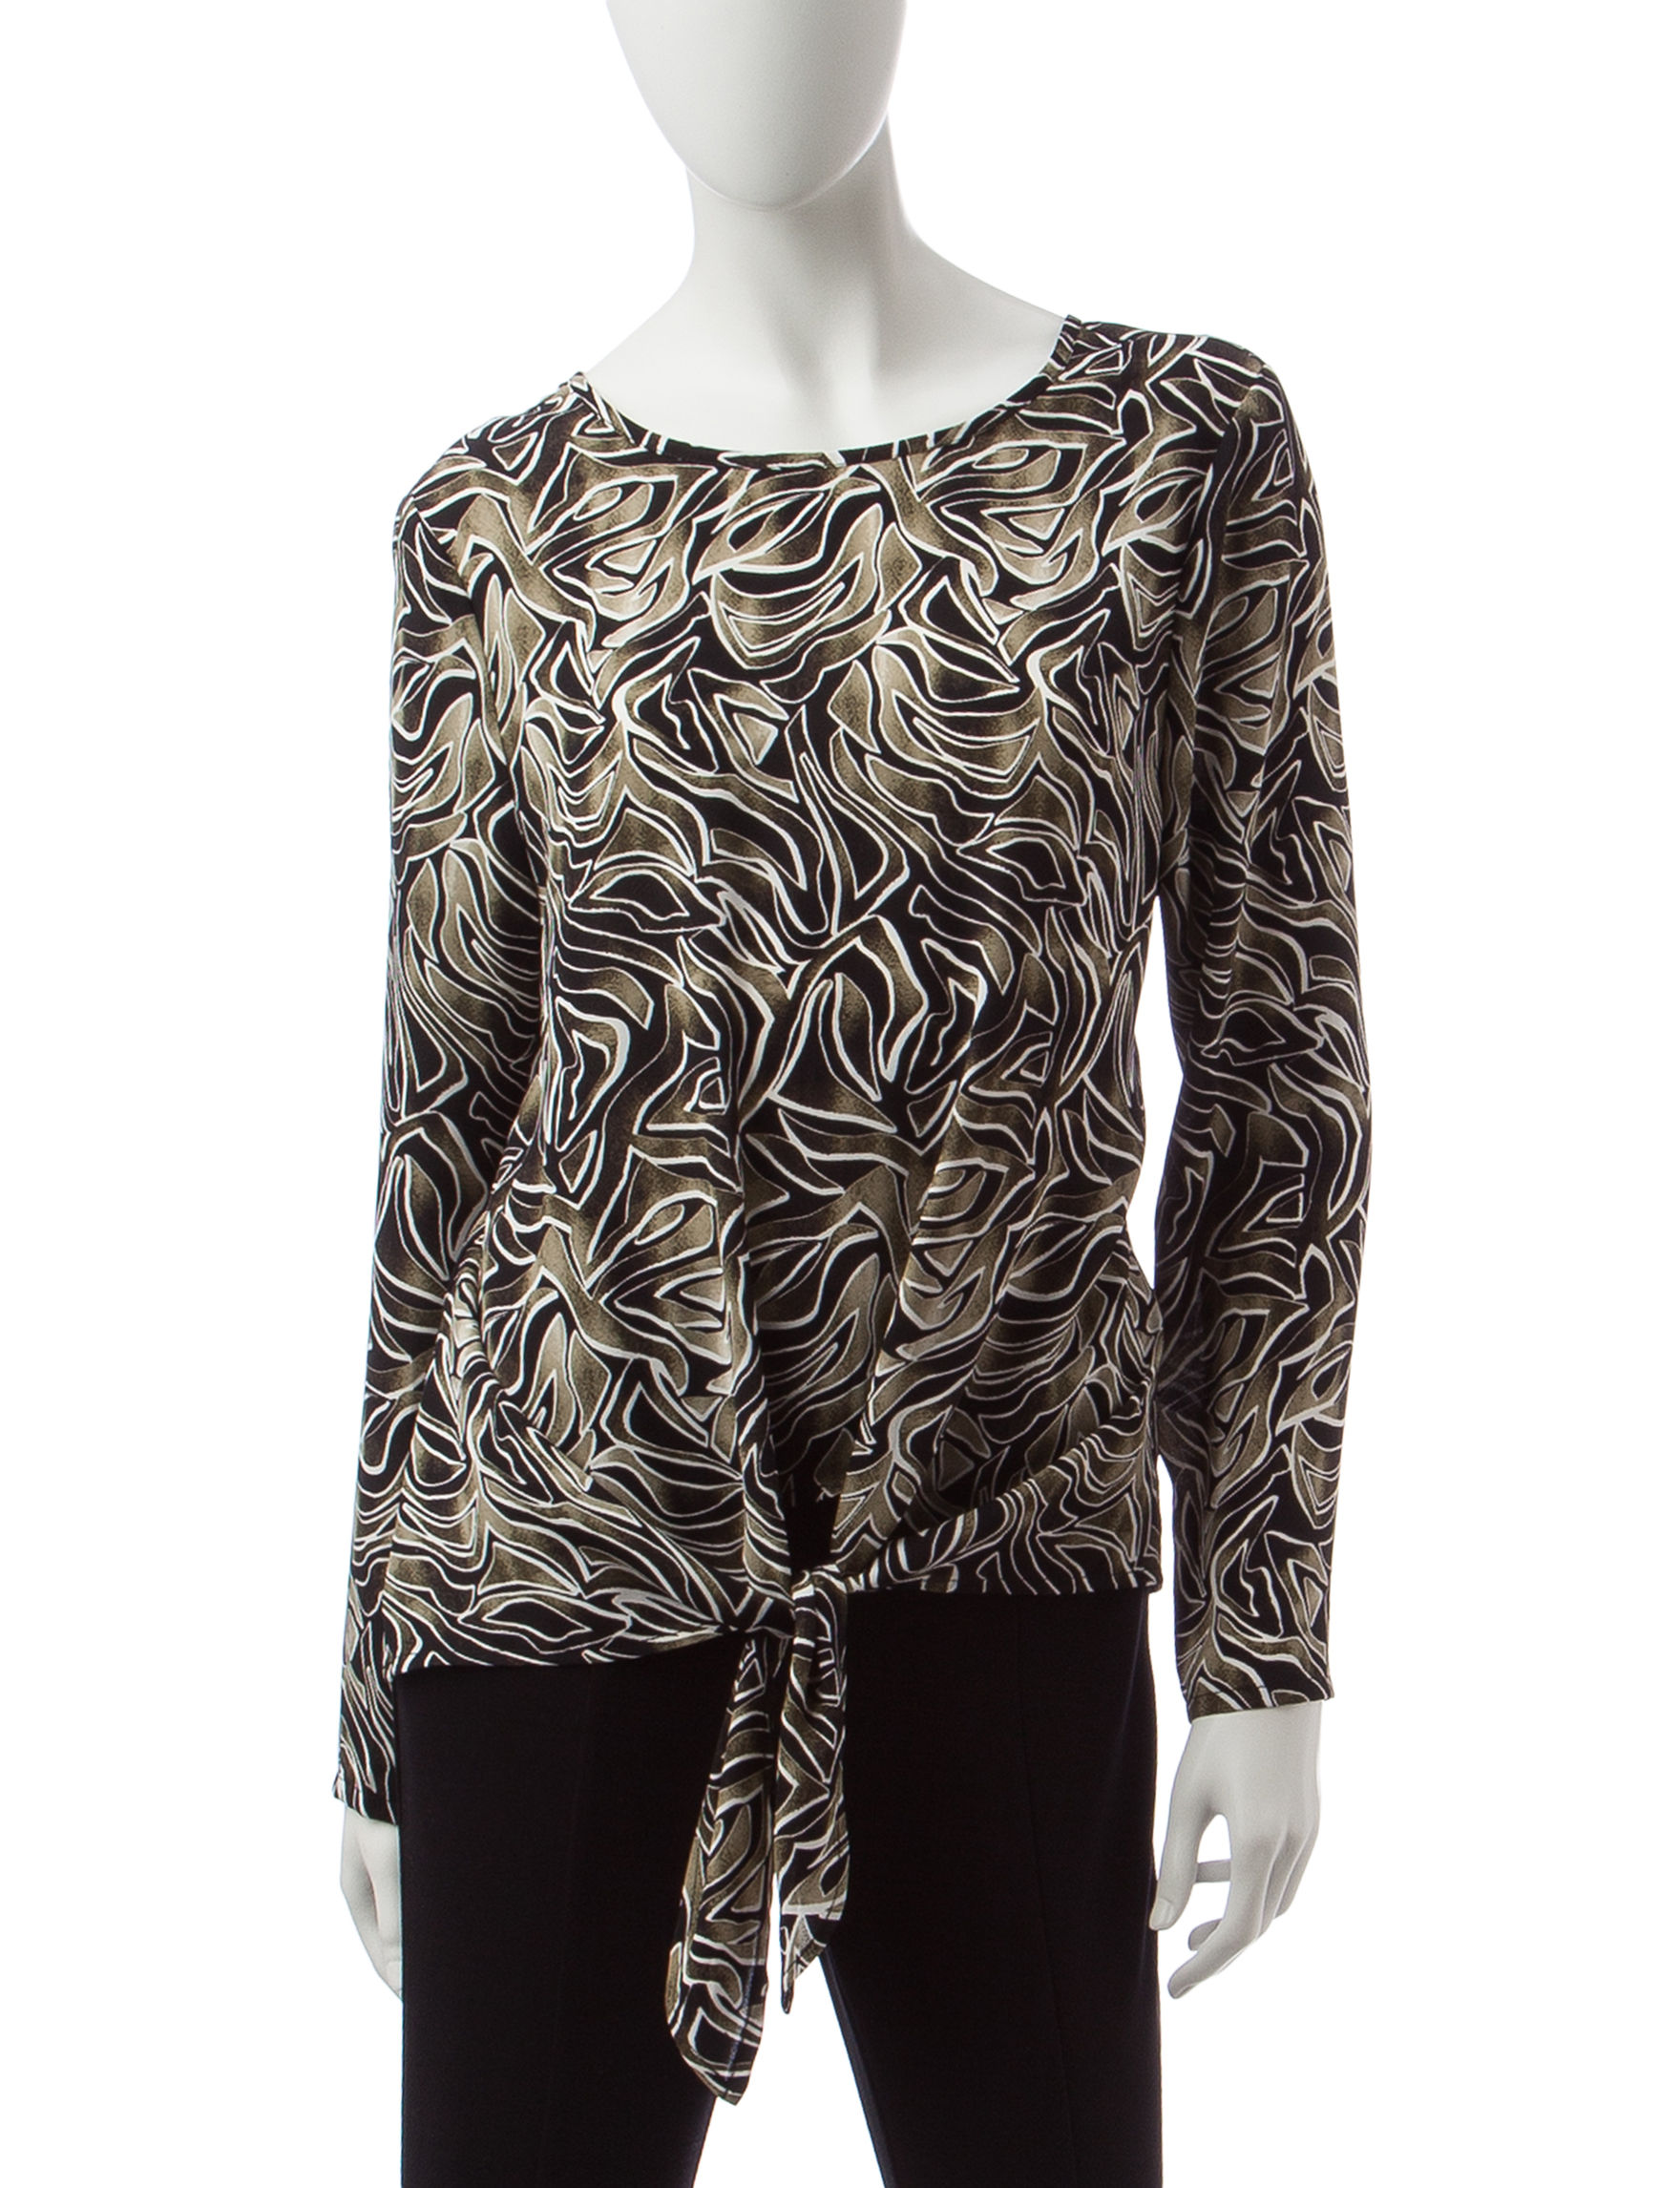 Signature Studio Black Multi Shirts & Blouses